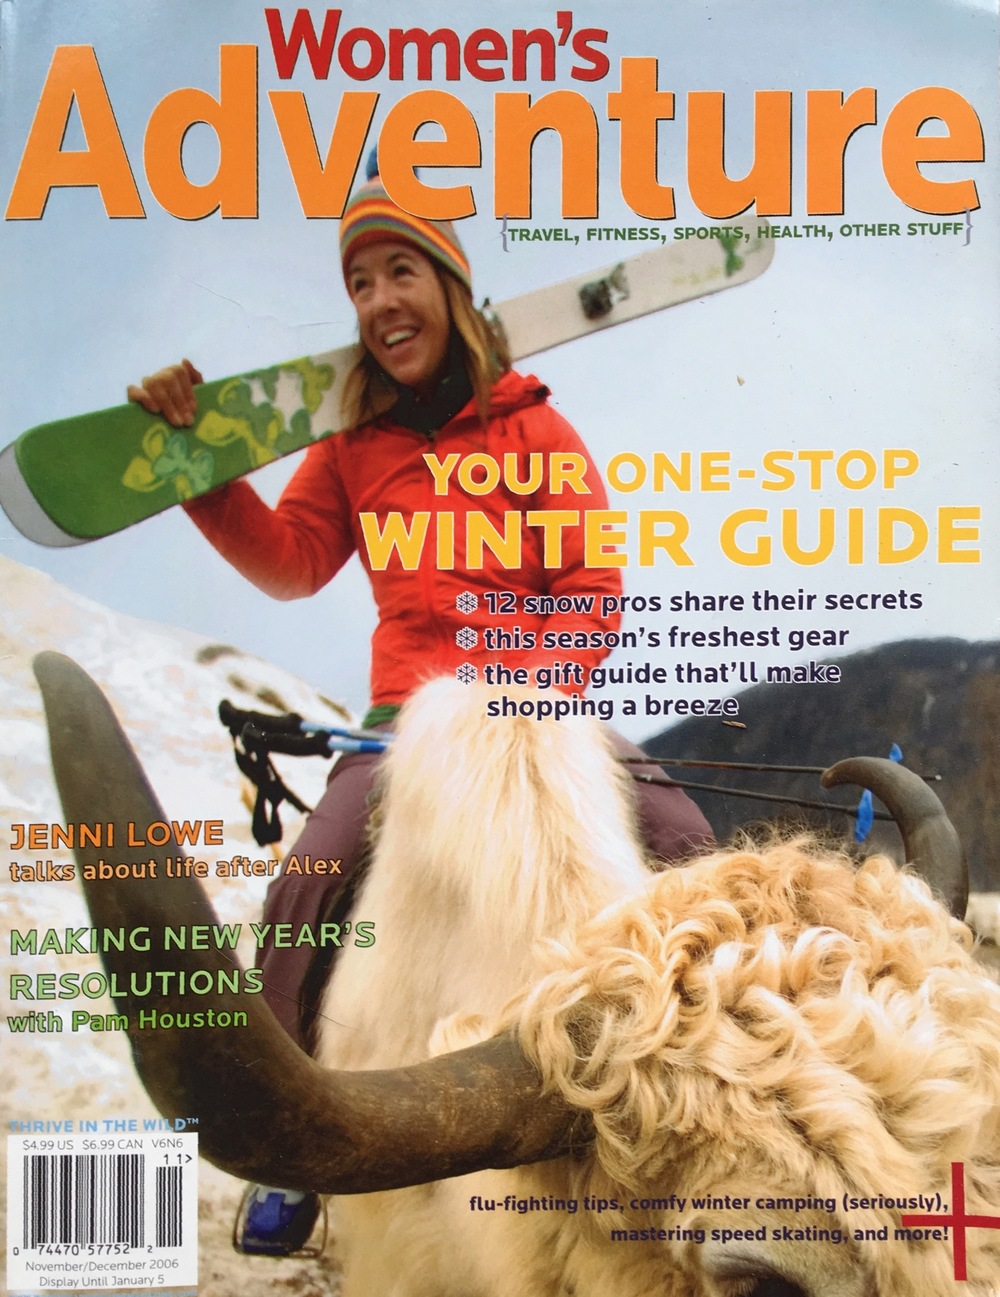 Forget Me Not  Jenni Lowe talks about life after Alex.   Women's Adventure, November 2006